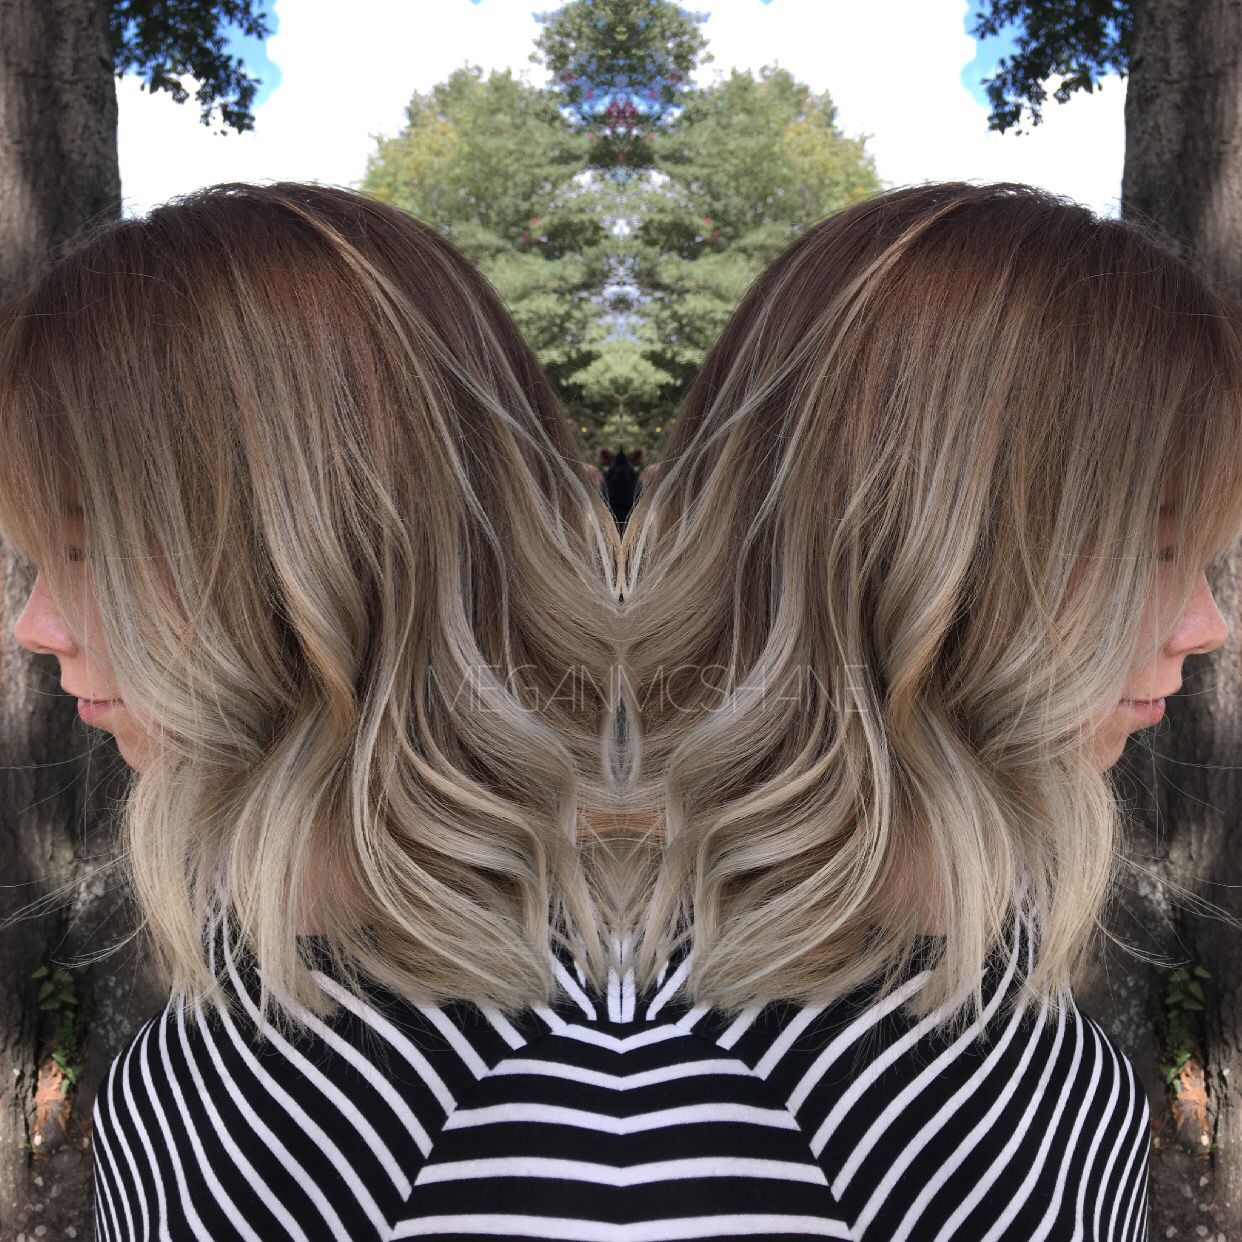 Balayage . Fall hair . Balayage ombré . Smudged root . Shadow root . Texas hairstylist . Ombré . Balayage hair . Hair By Megan McShane . Silver hair . Silver ombré .